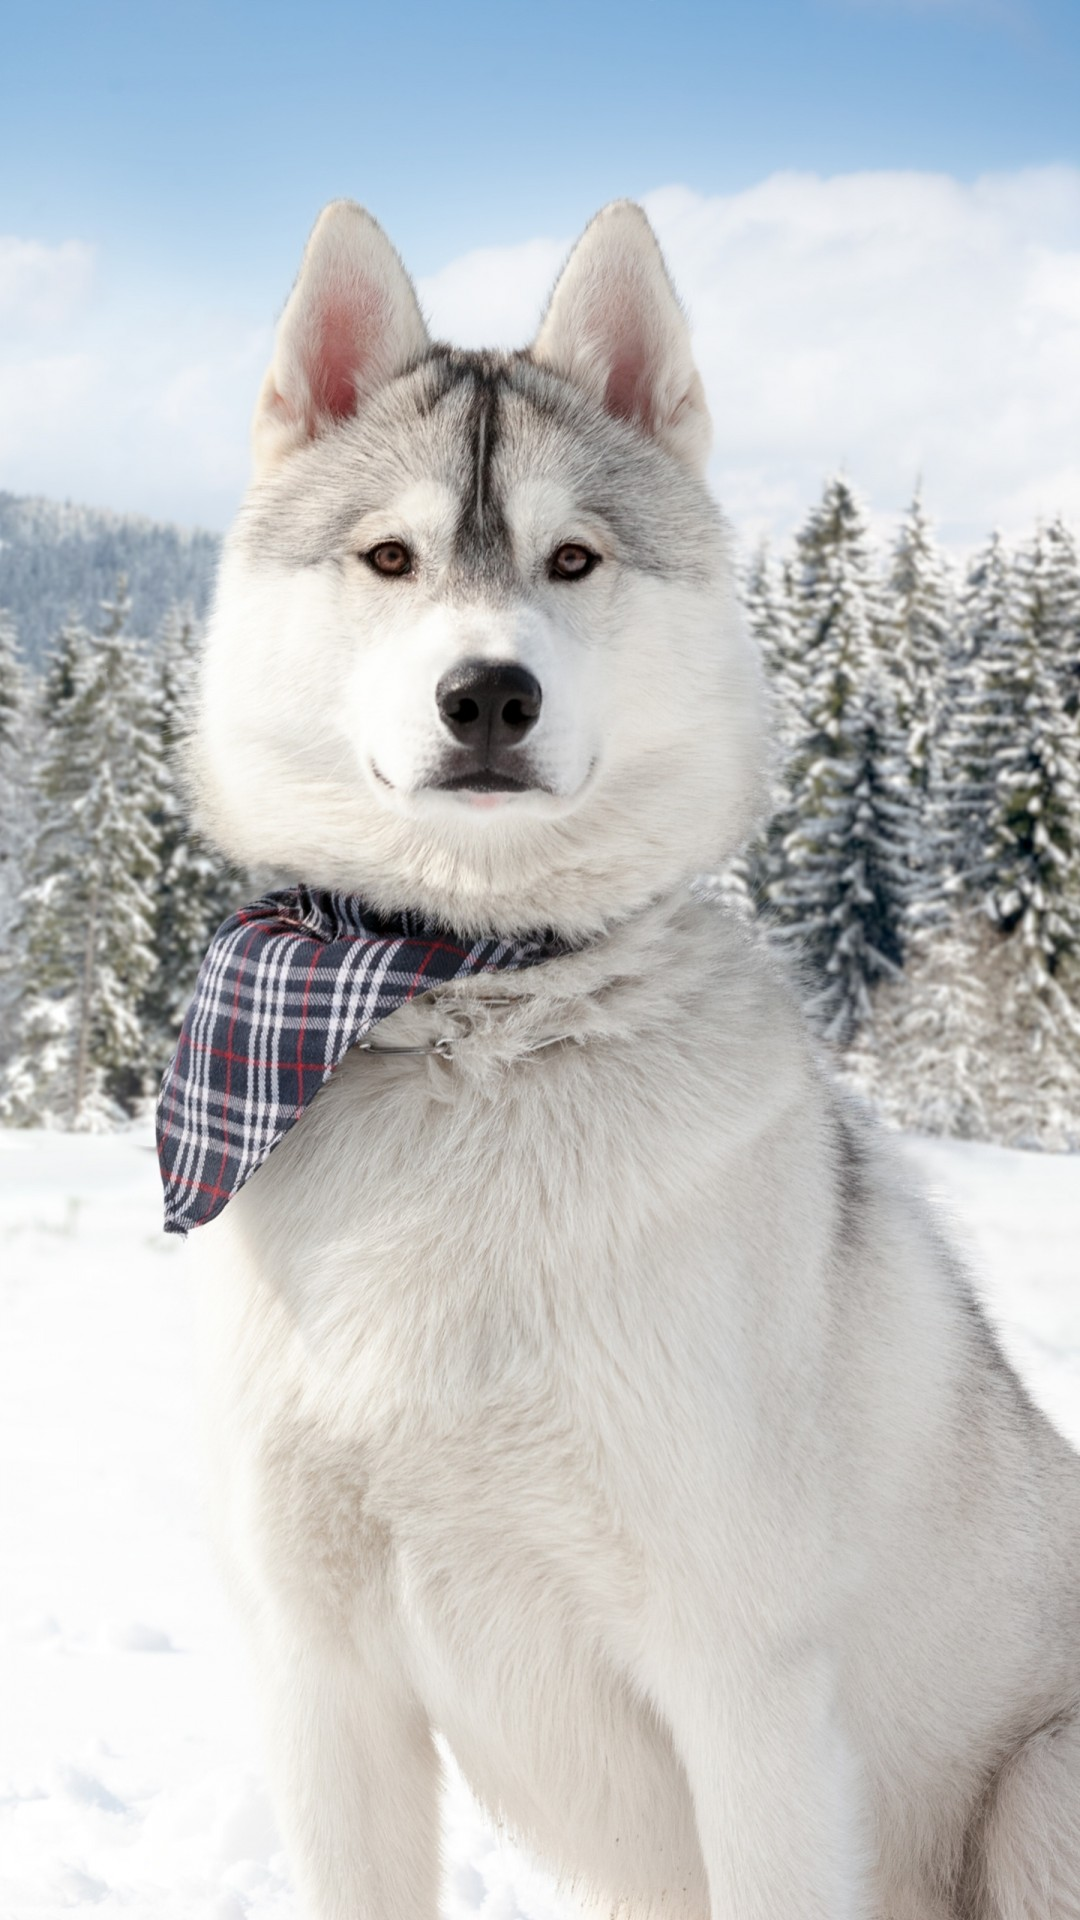 Winter Animal Wallpaper Wallpaper Huskies Dog Puppy Snow Forest Winter White